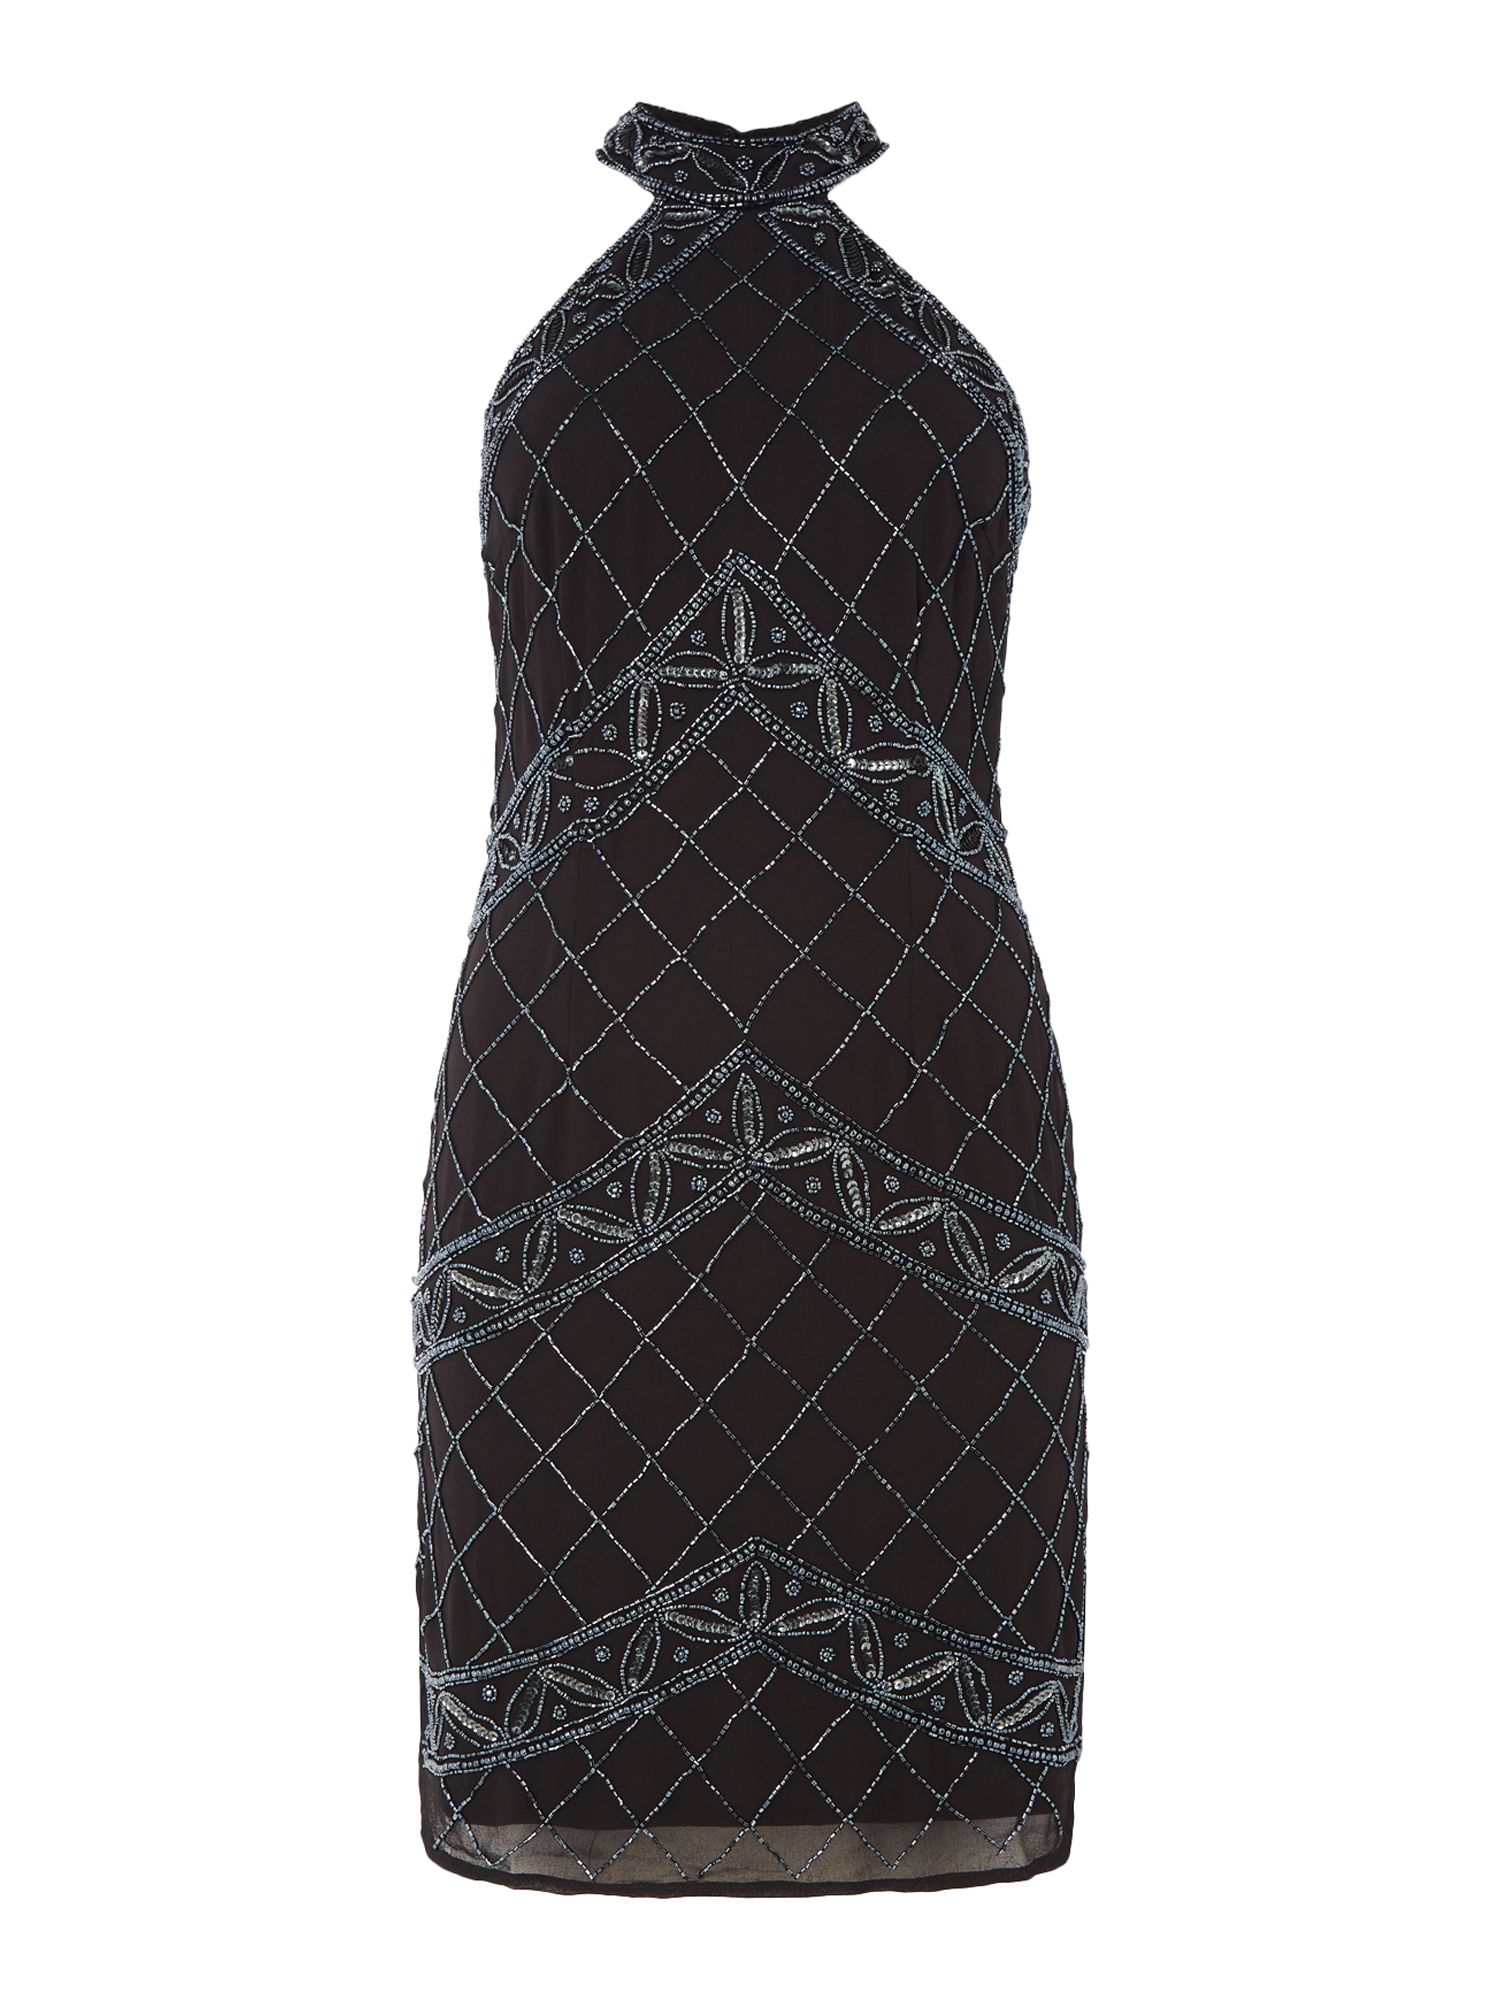 Lace and Beads Pocahuntus halterneck bodycon dress, Black